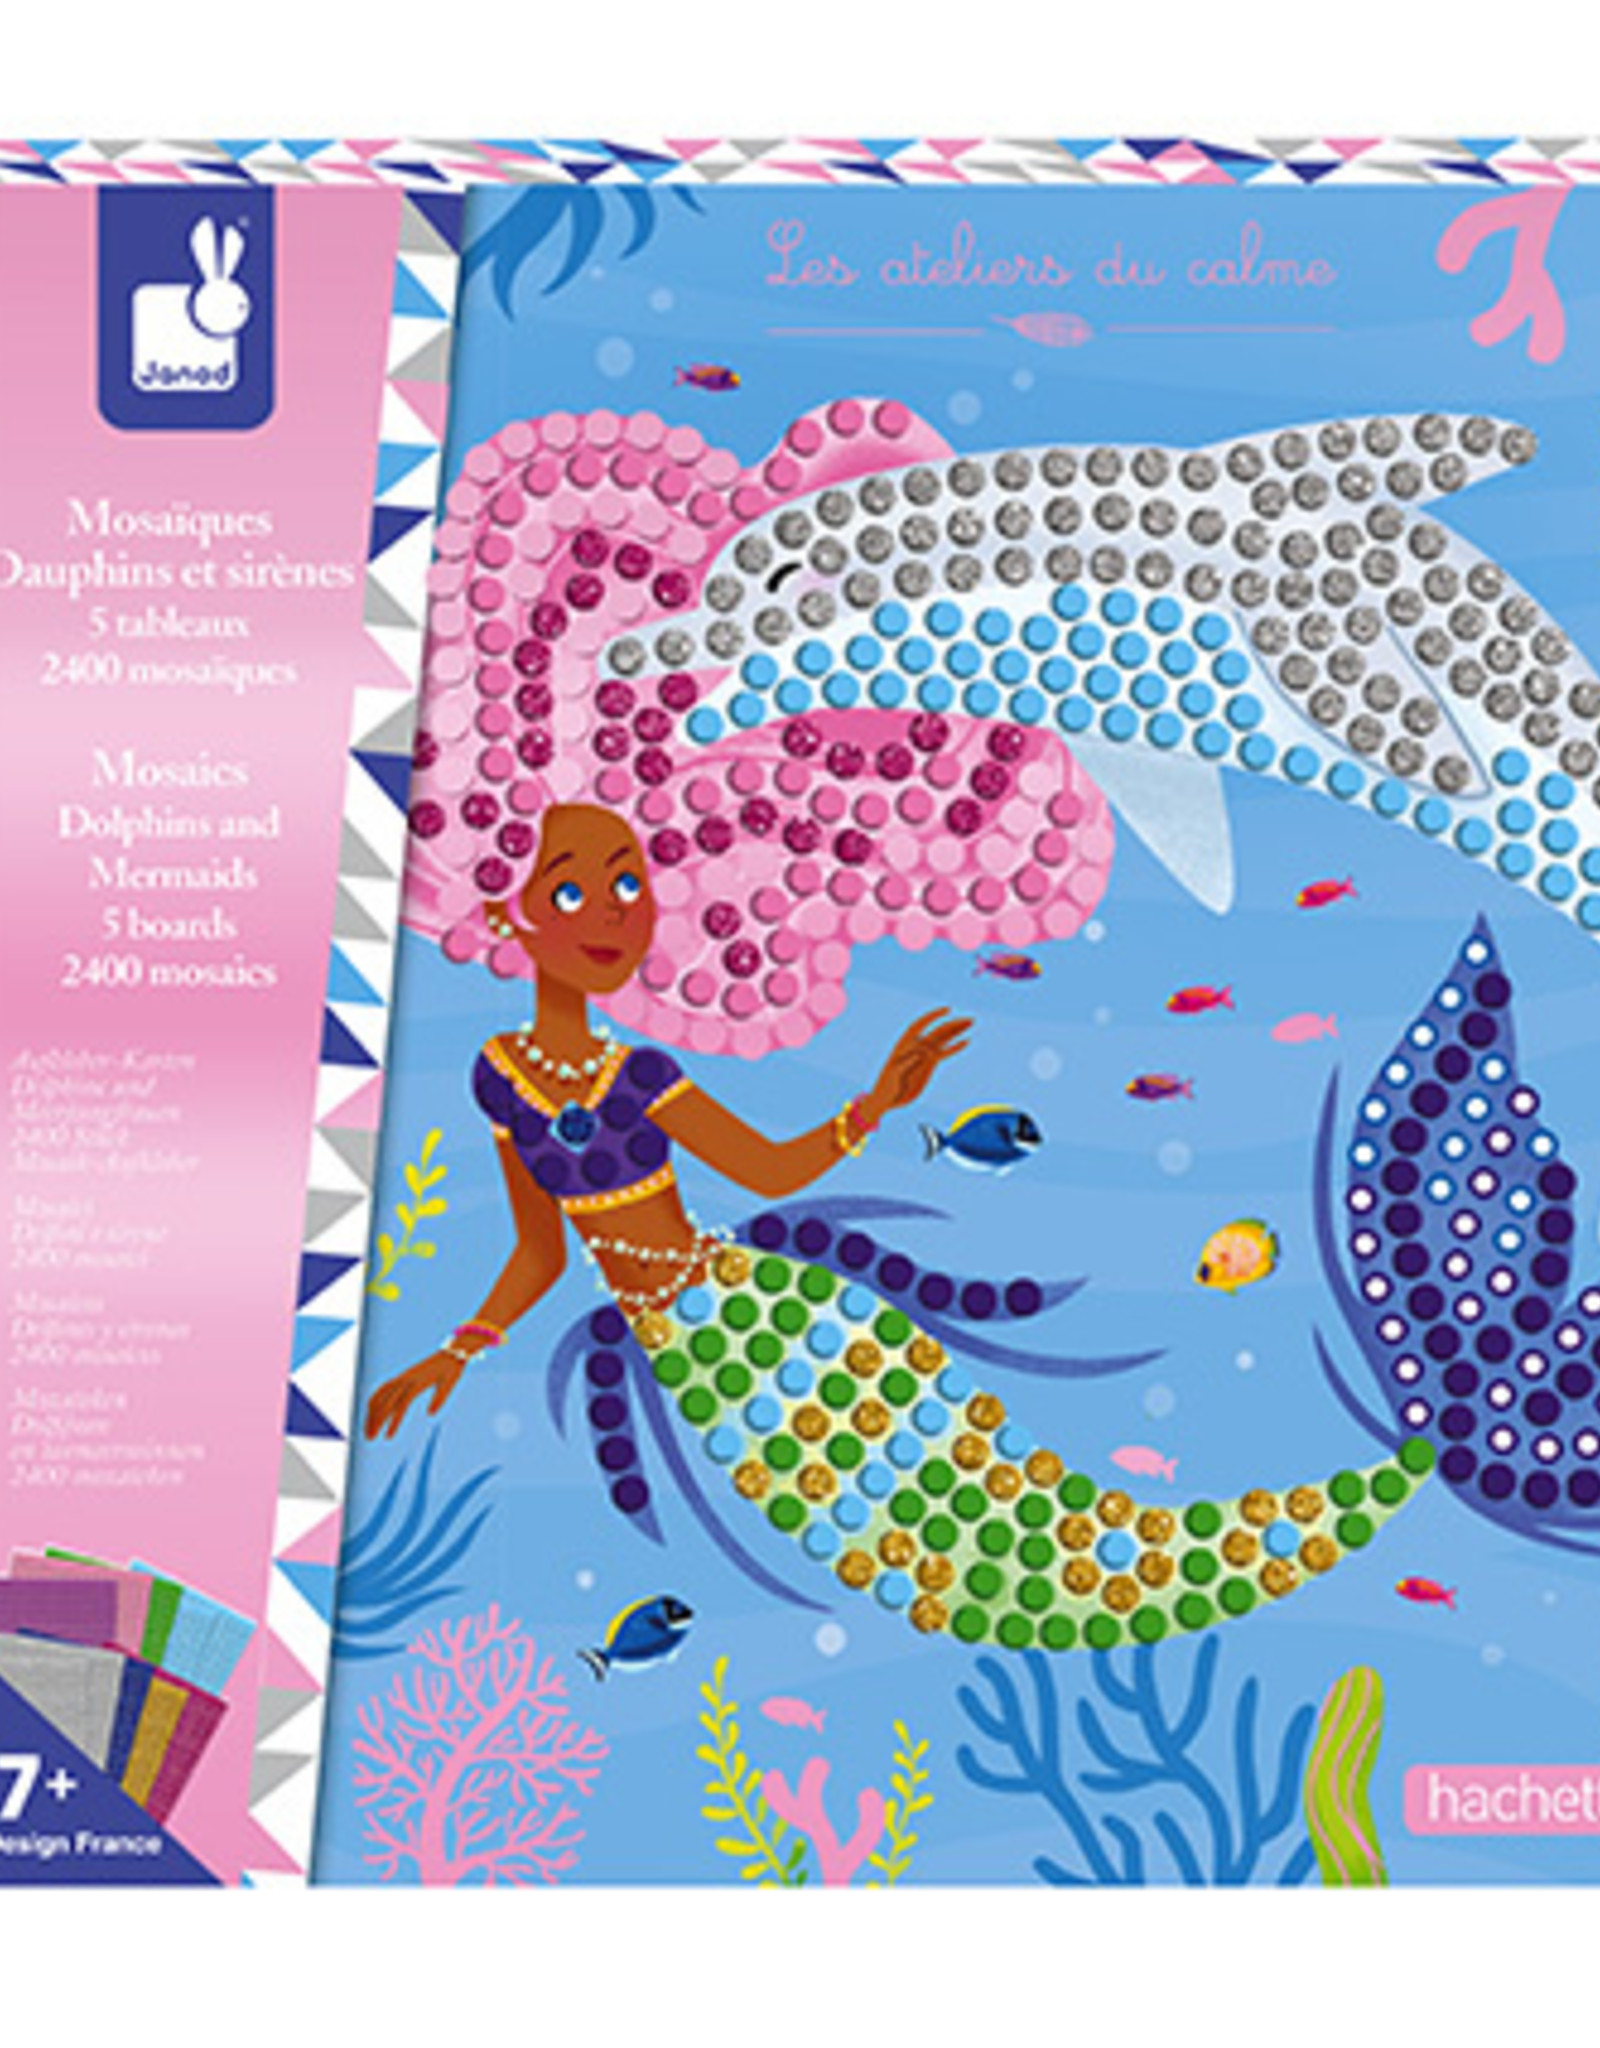 MOSAICS DOLPHINS AND MERMAIDS